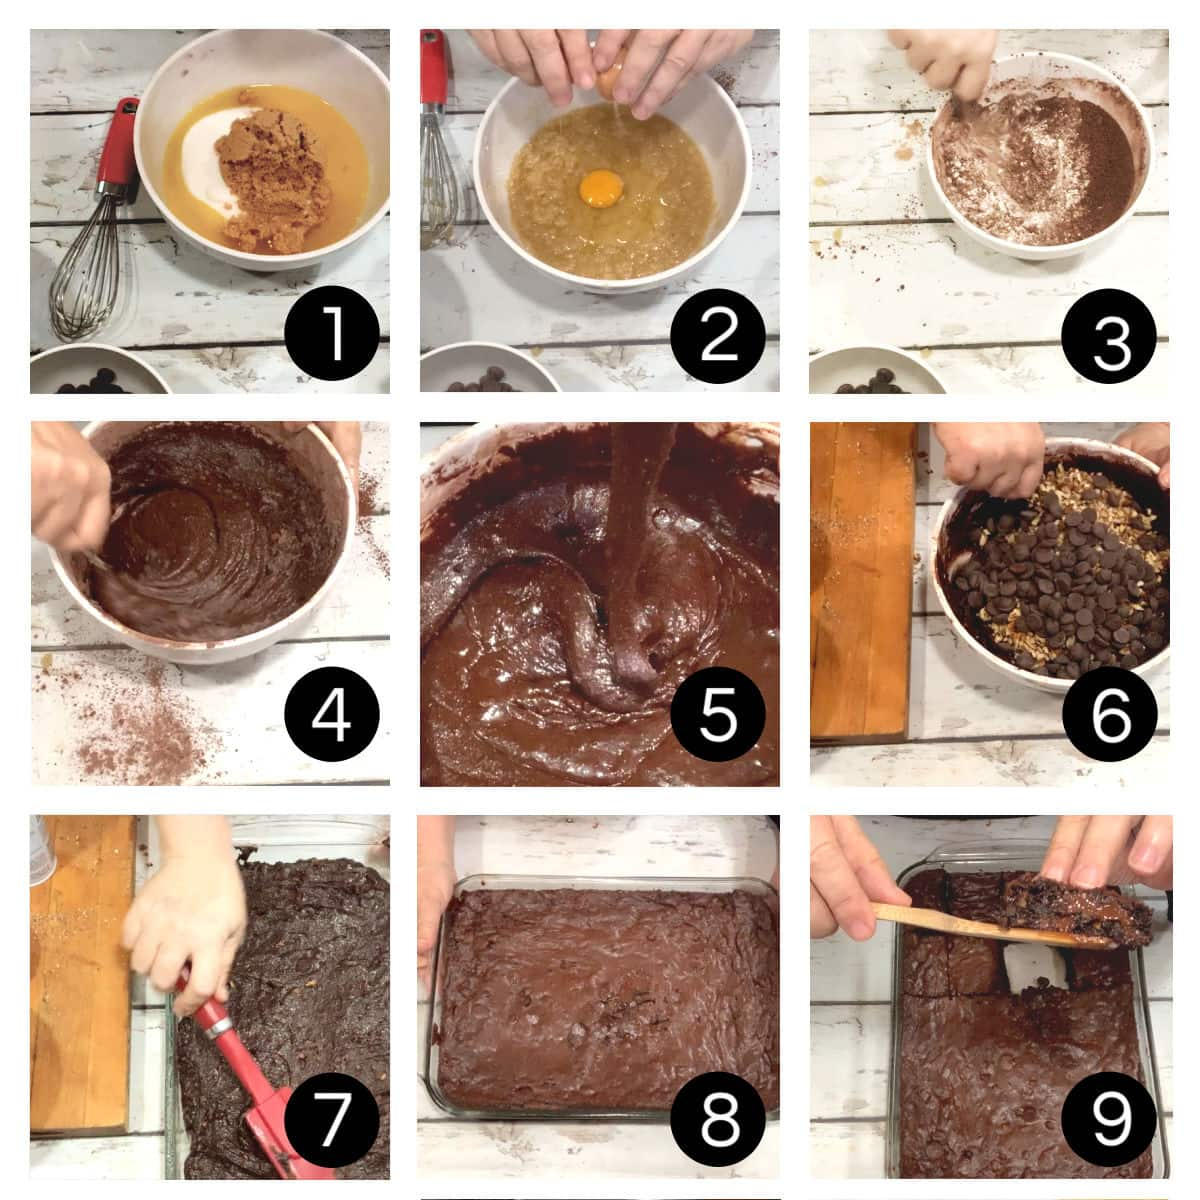 Step by step images for making brownies.